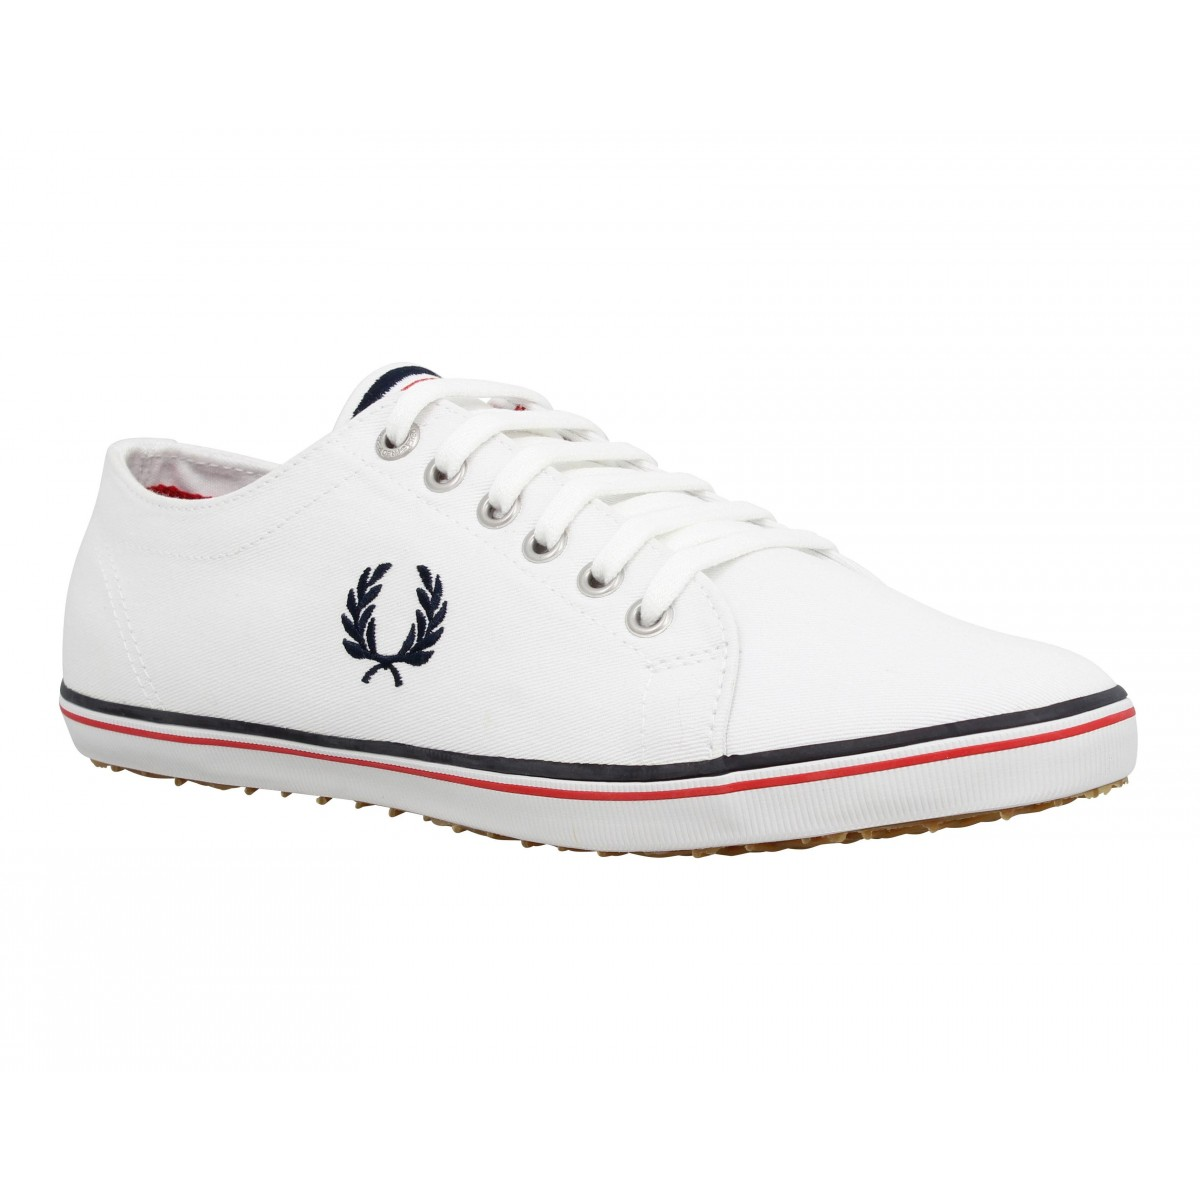 Baskets FRED PERRY Kingston toile Homme Blanc + Marine